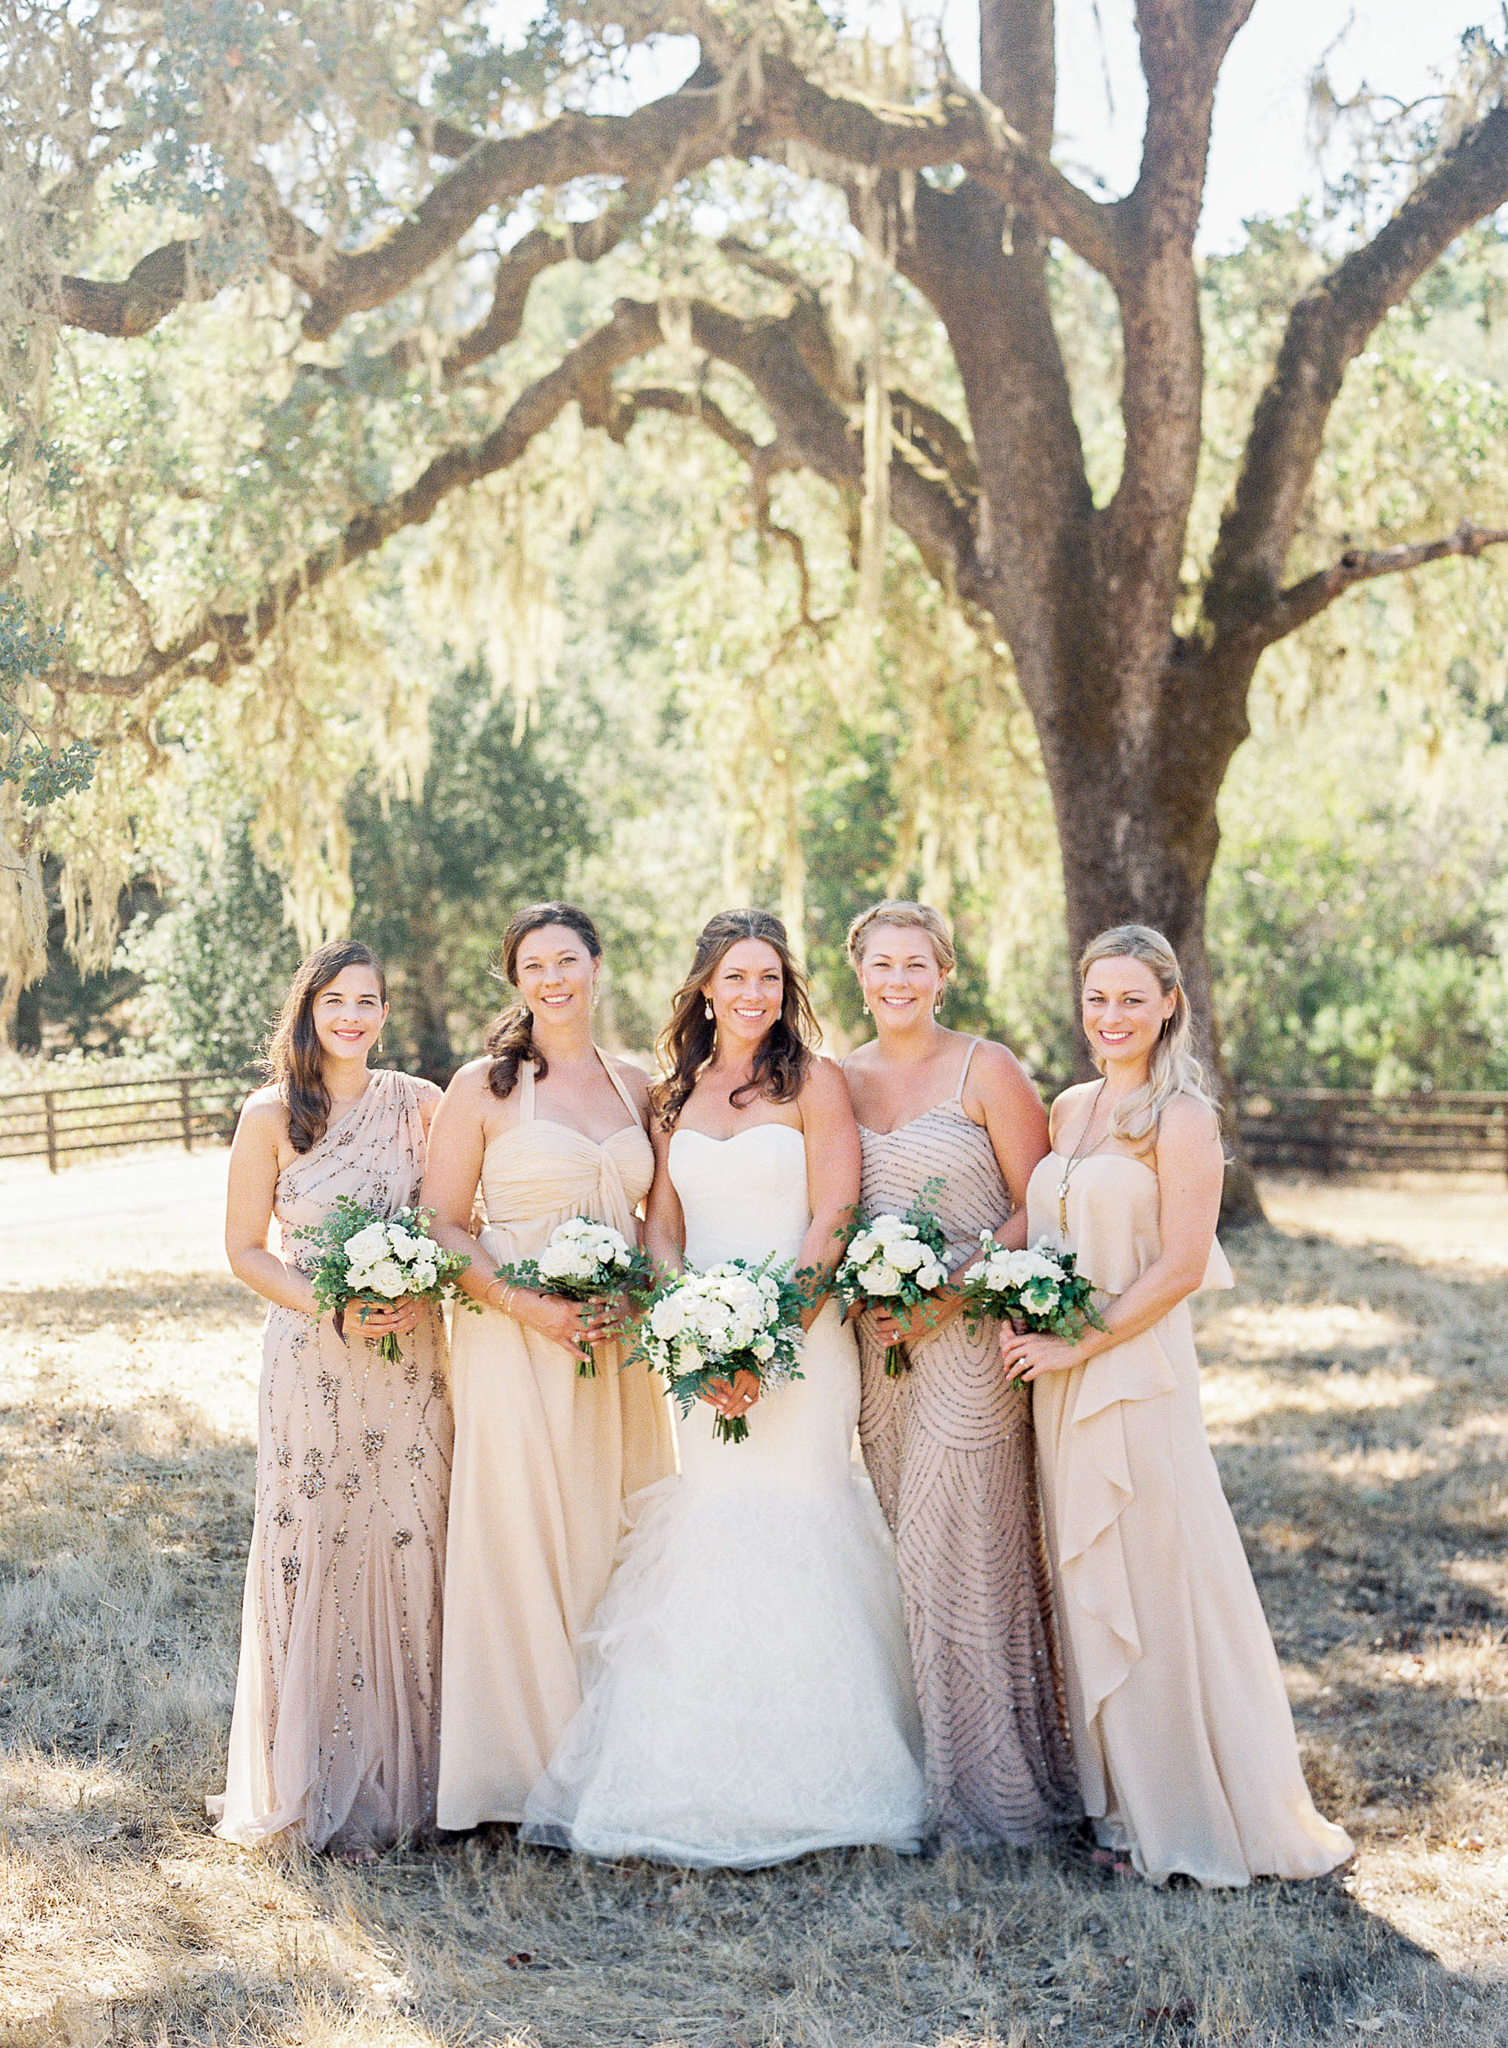 Meghan Mehan Photography - Fine Art Film Wedding Photography - San Francisco | Napa | Sonoma | Big Sur | Chicago | Minneapolis | Milwaukee | Lake Geneva | Door County | Wisconsin 035.jpg